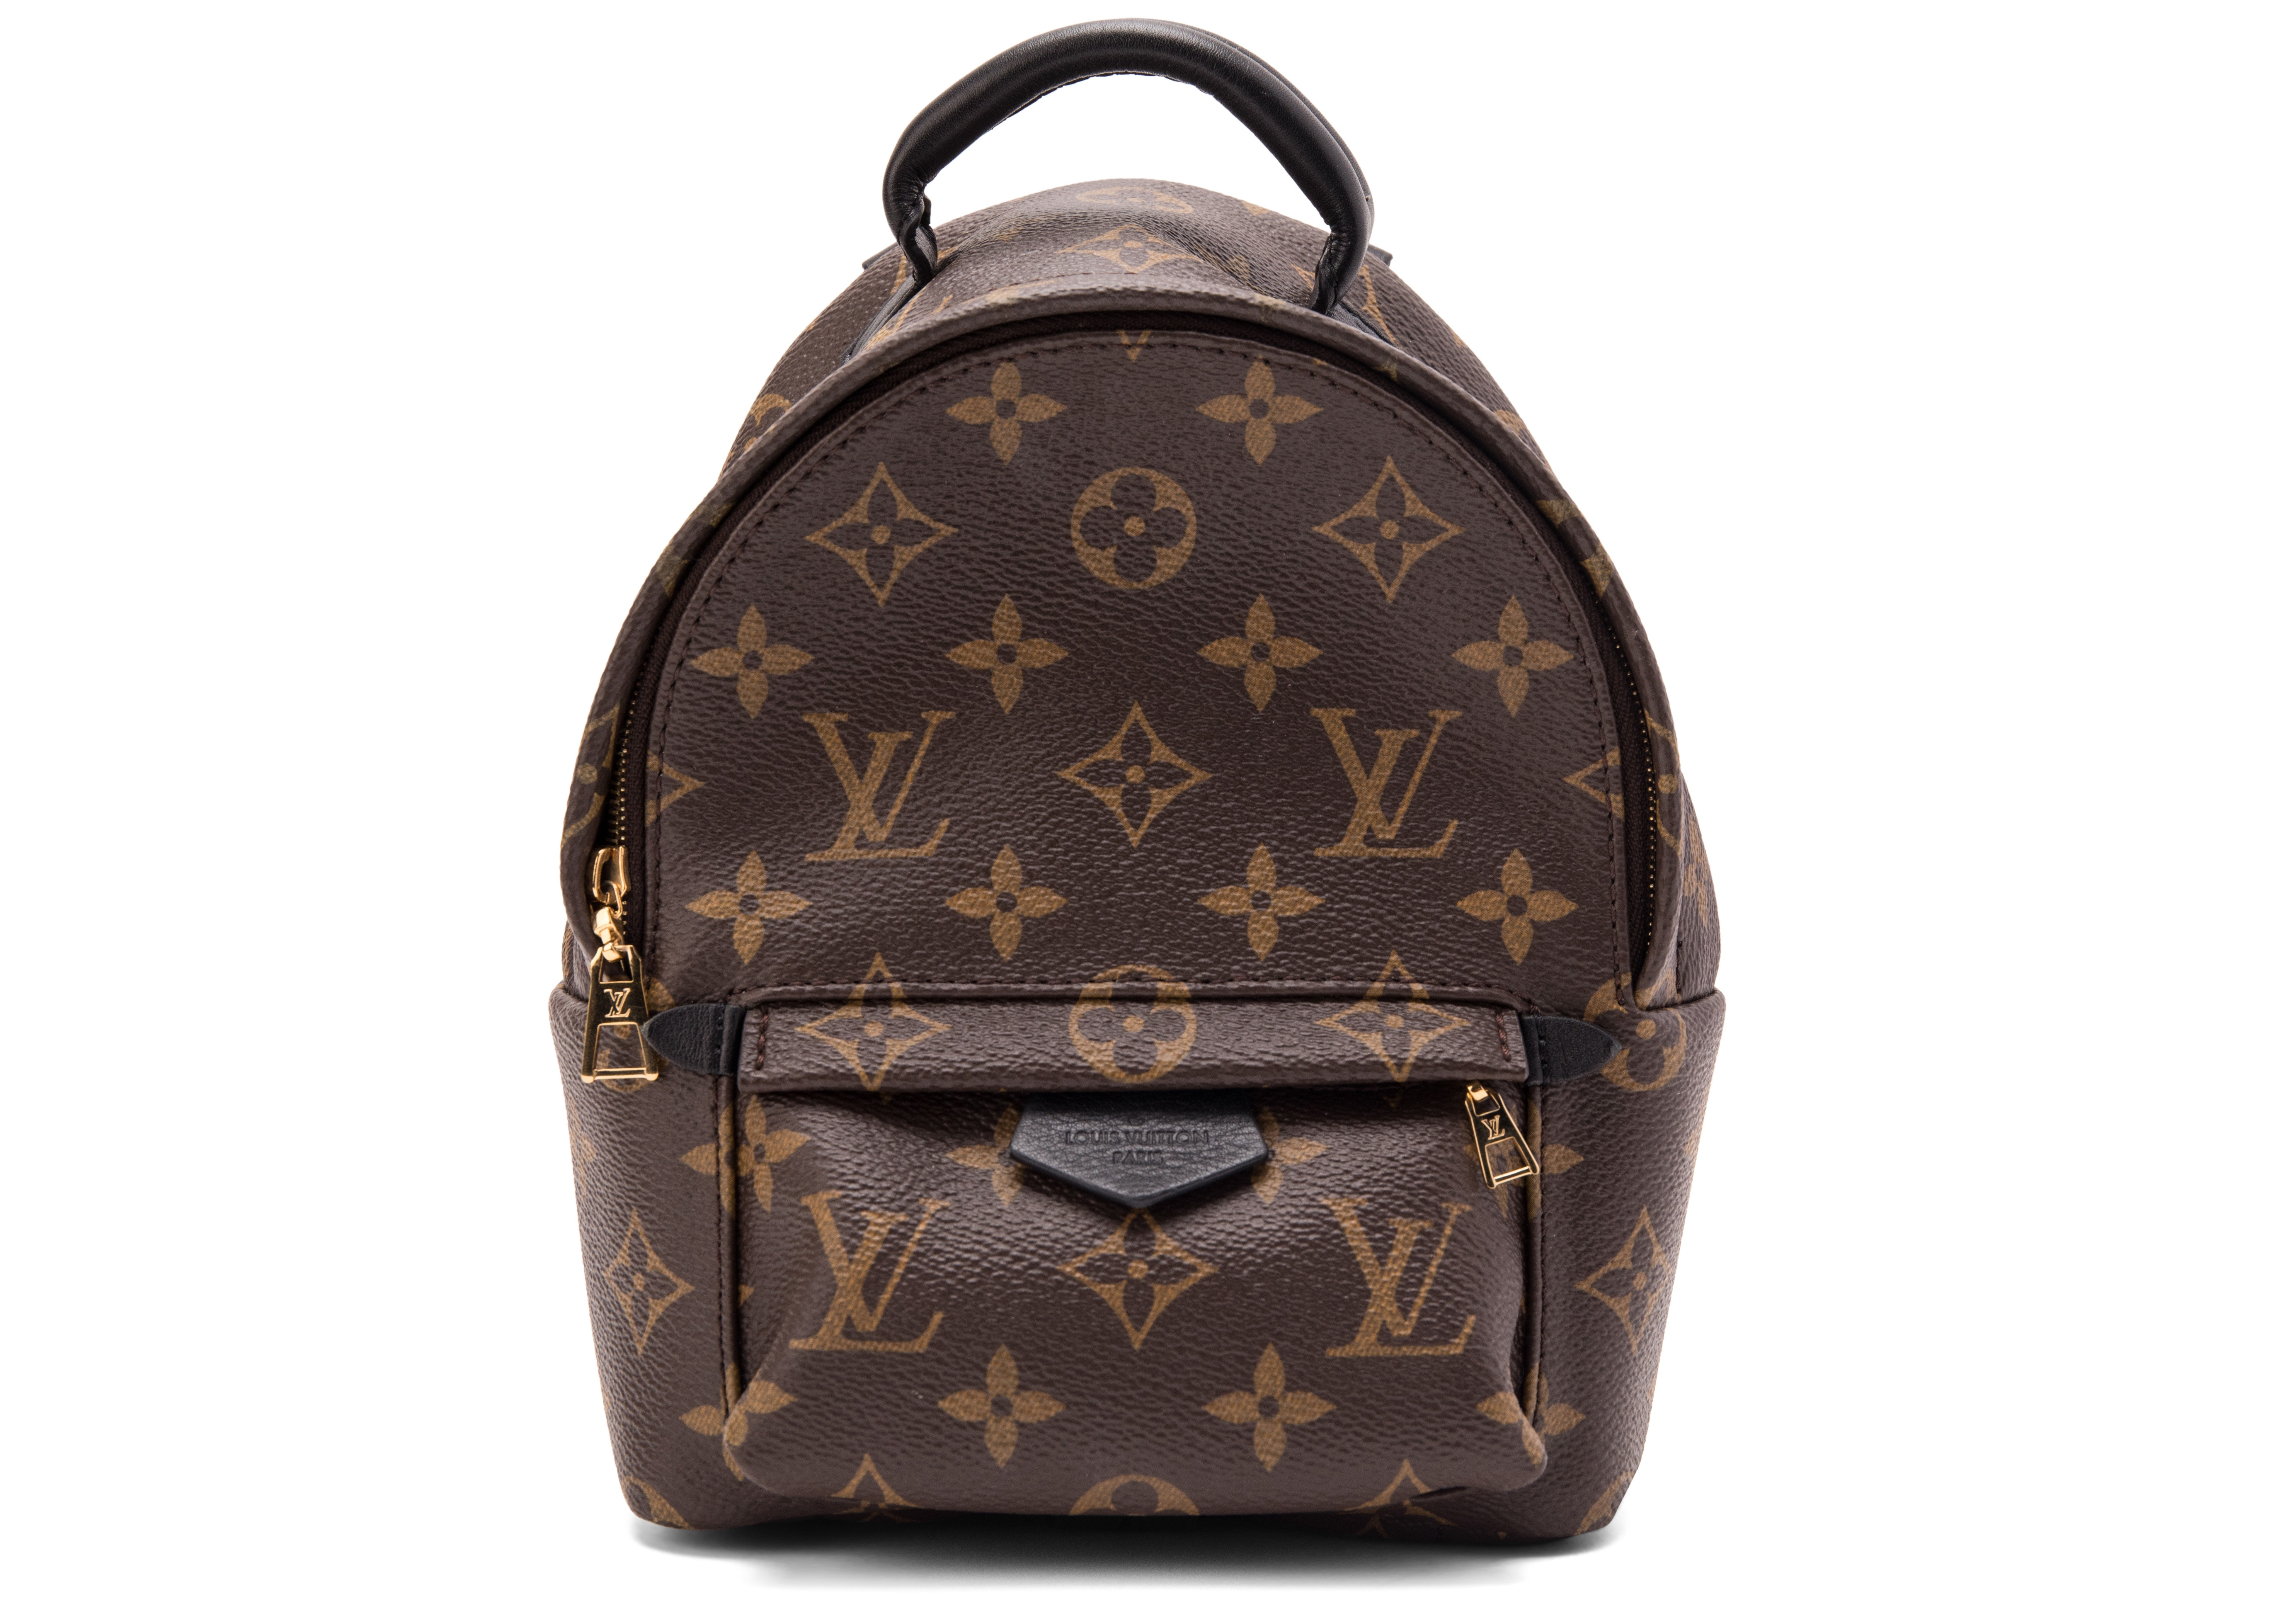 Louis Vuitton Palm Springs Monogram Mini Brown